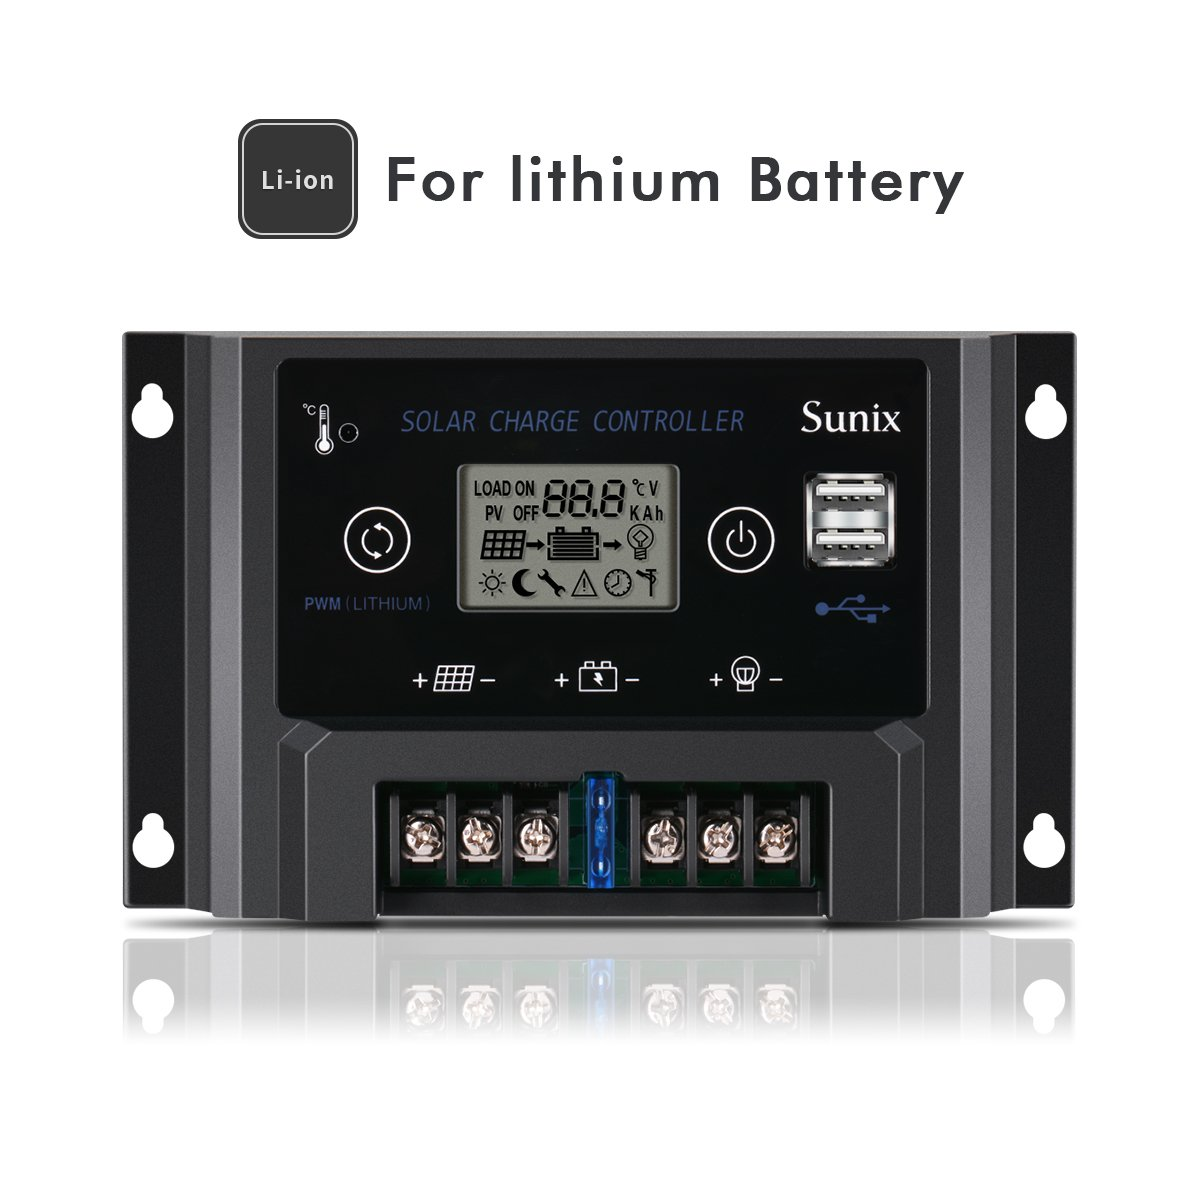 Sunix 20A Solar Charge Controller for lithium Battery, Upgraded Solar Panel Charge Intelligent 12V Regulator with Fuse, Dual 5V 2A USB Port, Overload Protection Temperature Compensation